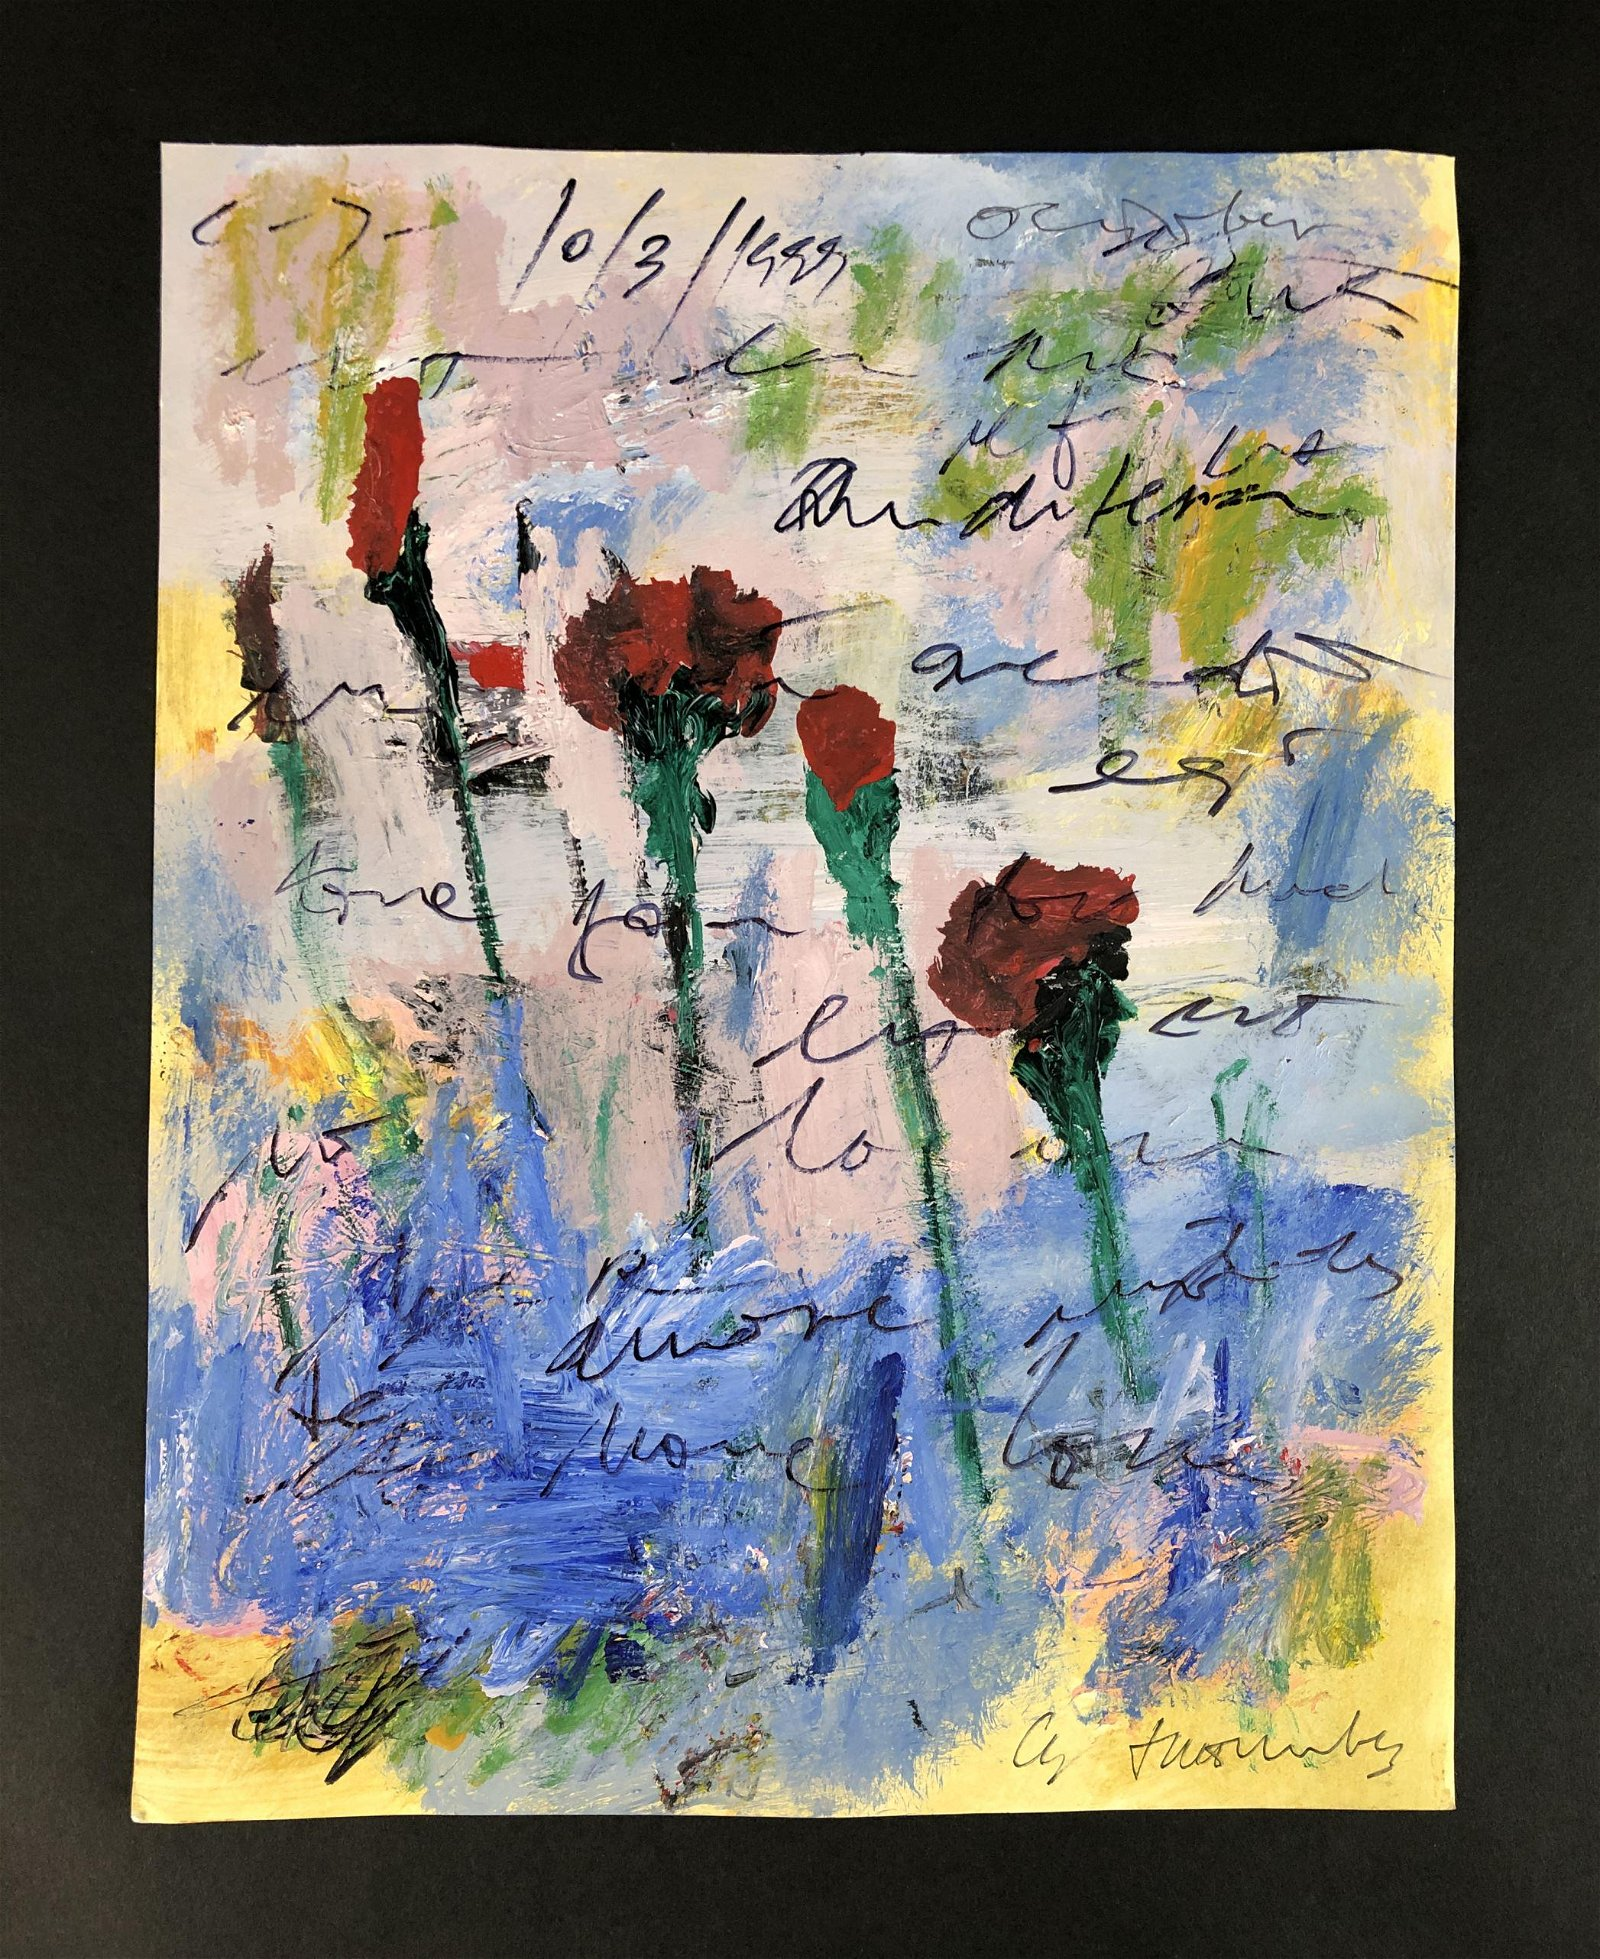 Cy Twombly (American, 1928-2011) - Mixed Media on Paper